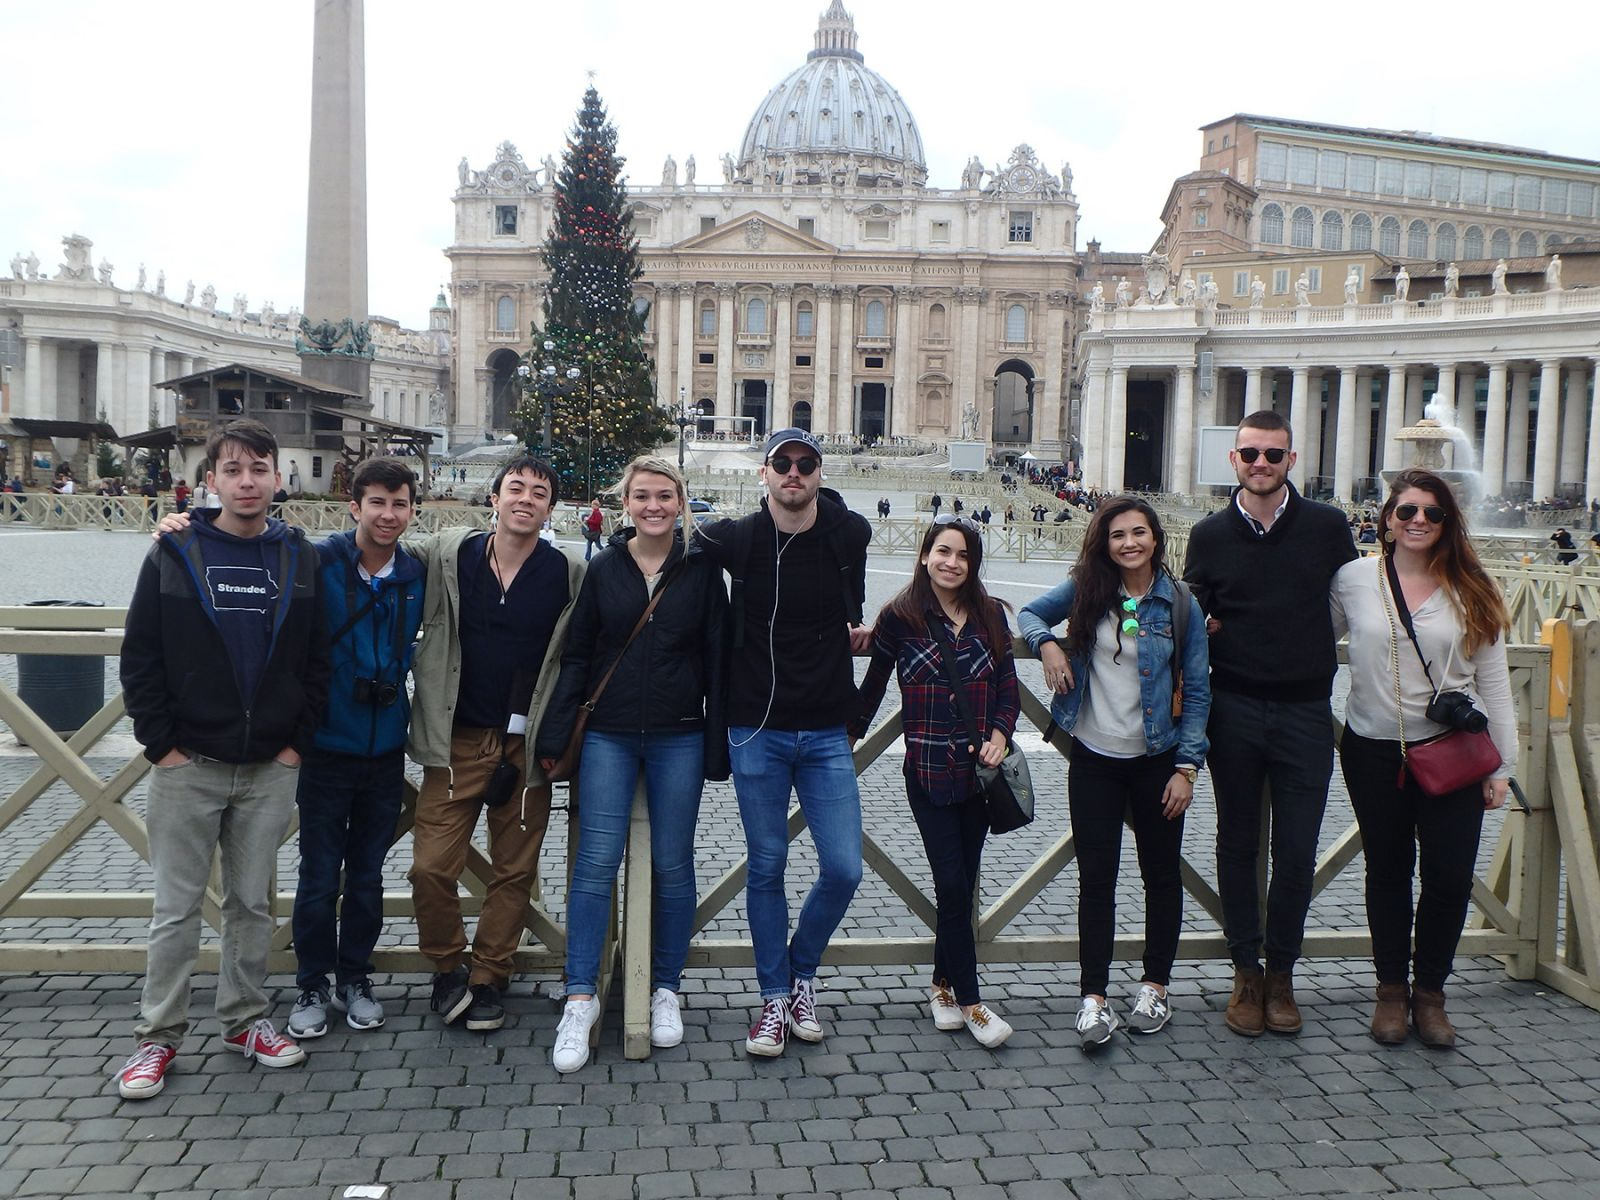 Landscape architecture students visit Piazza San Pietro in front of St. Peter's Basilica in Vatican City.